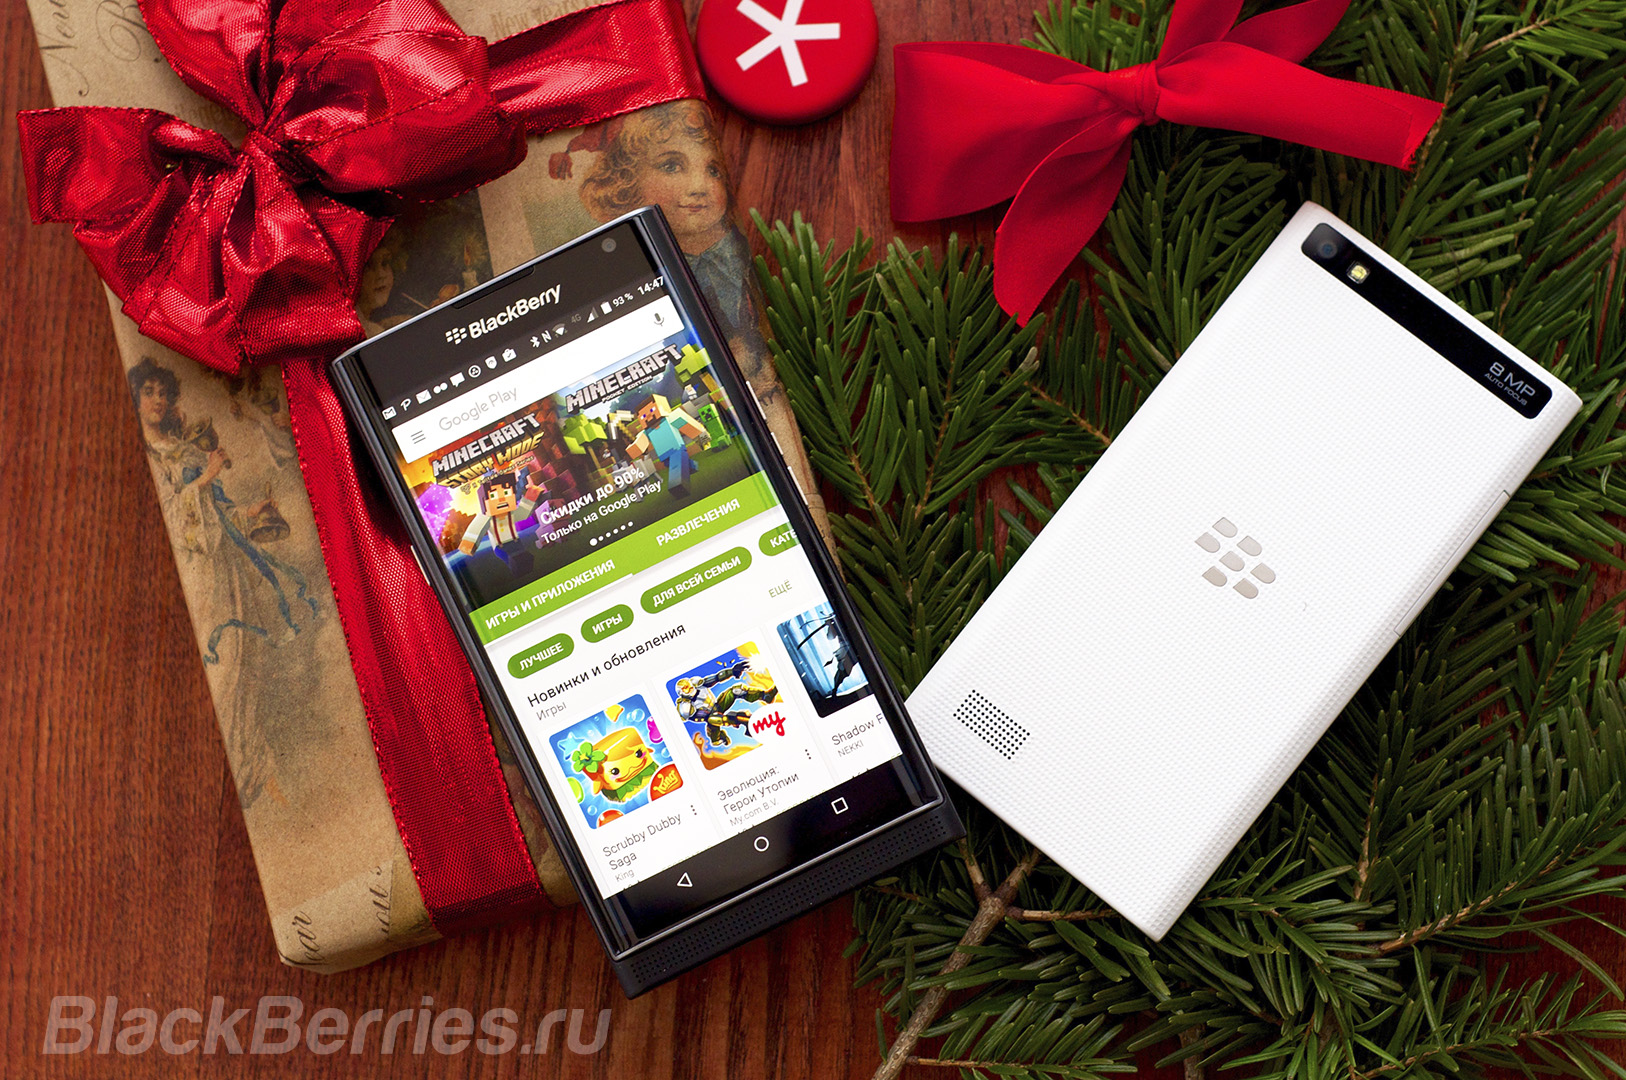 BlackBerry-New-Year-Apps-01